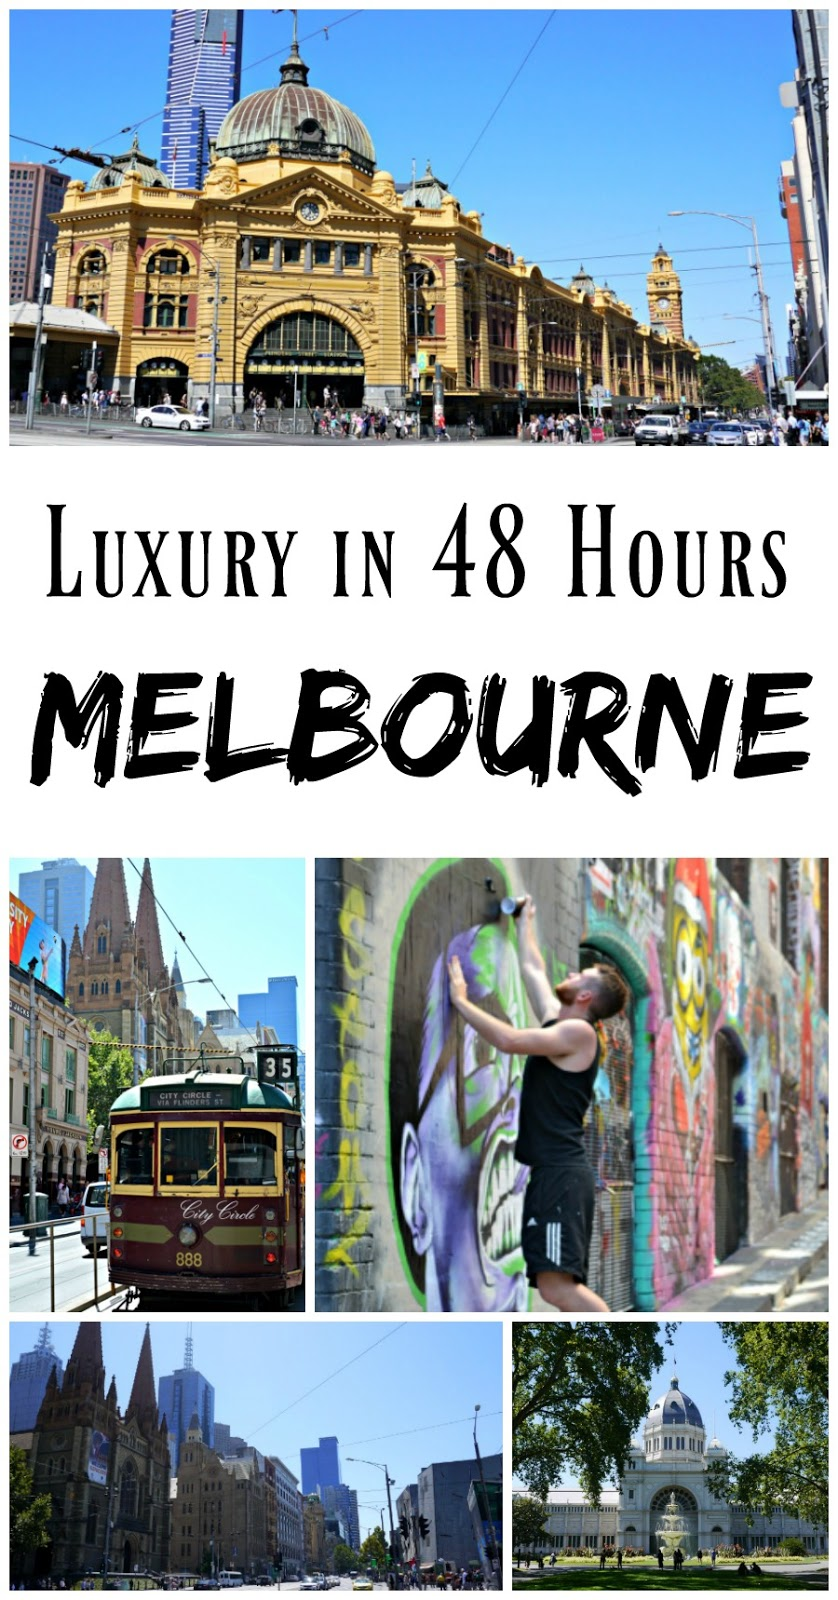 PIN FOR LATER: 48 Hours in Melbourne, Australia! How to spent a luxury 48 hours in Melbourne, including the best places to eat and see.